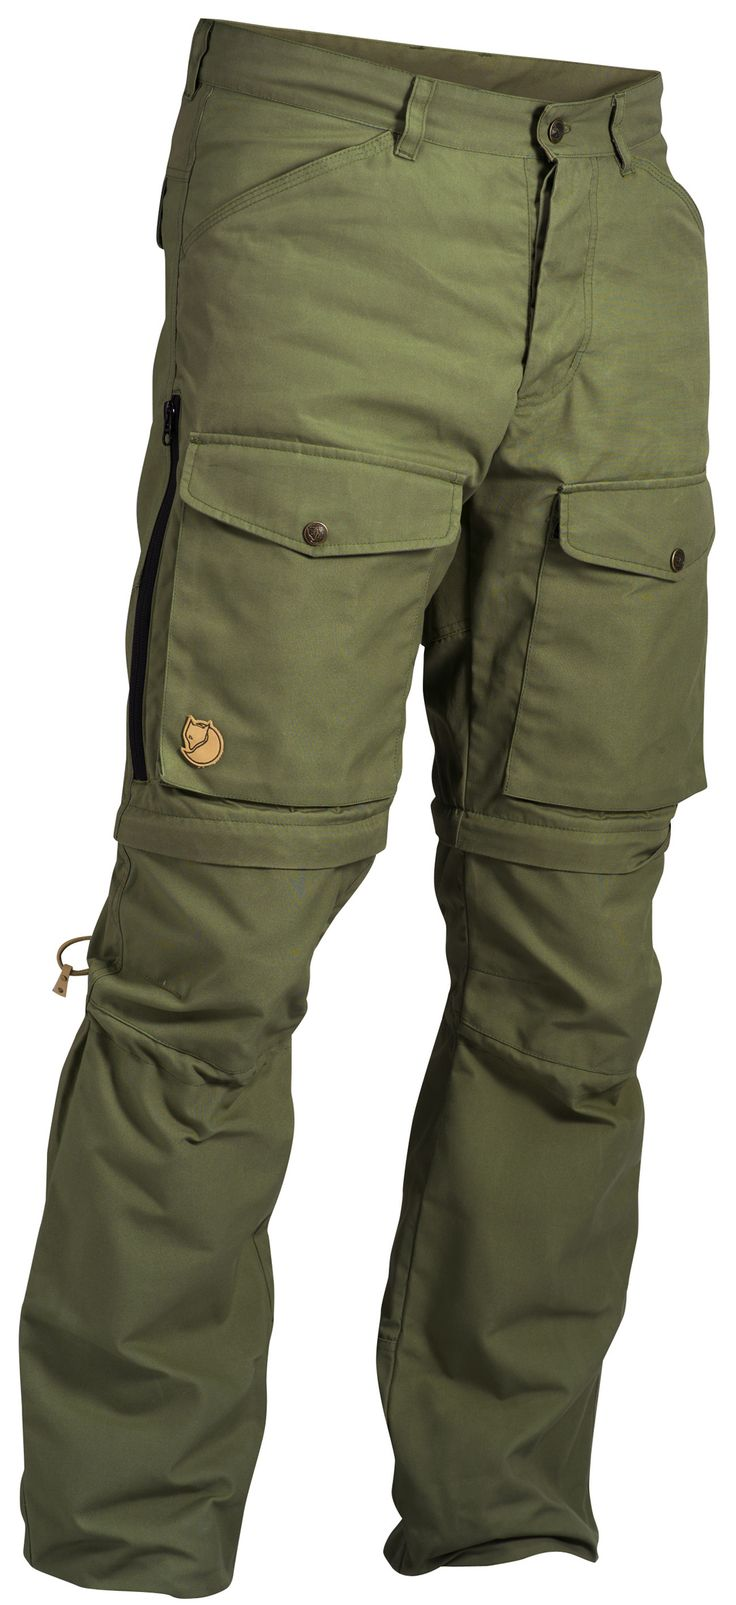 Fjallraven pants. Love that the pockets are on the front not on the sides!